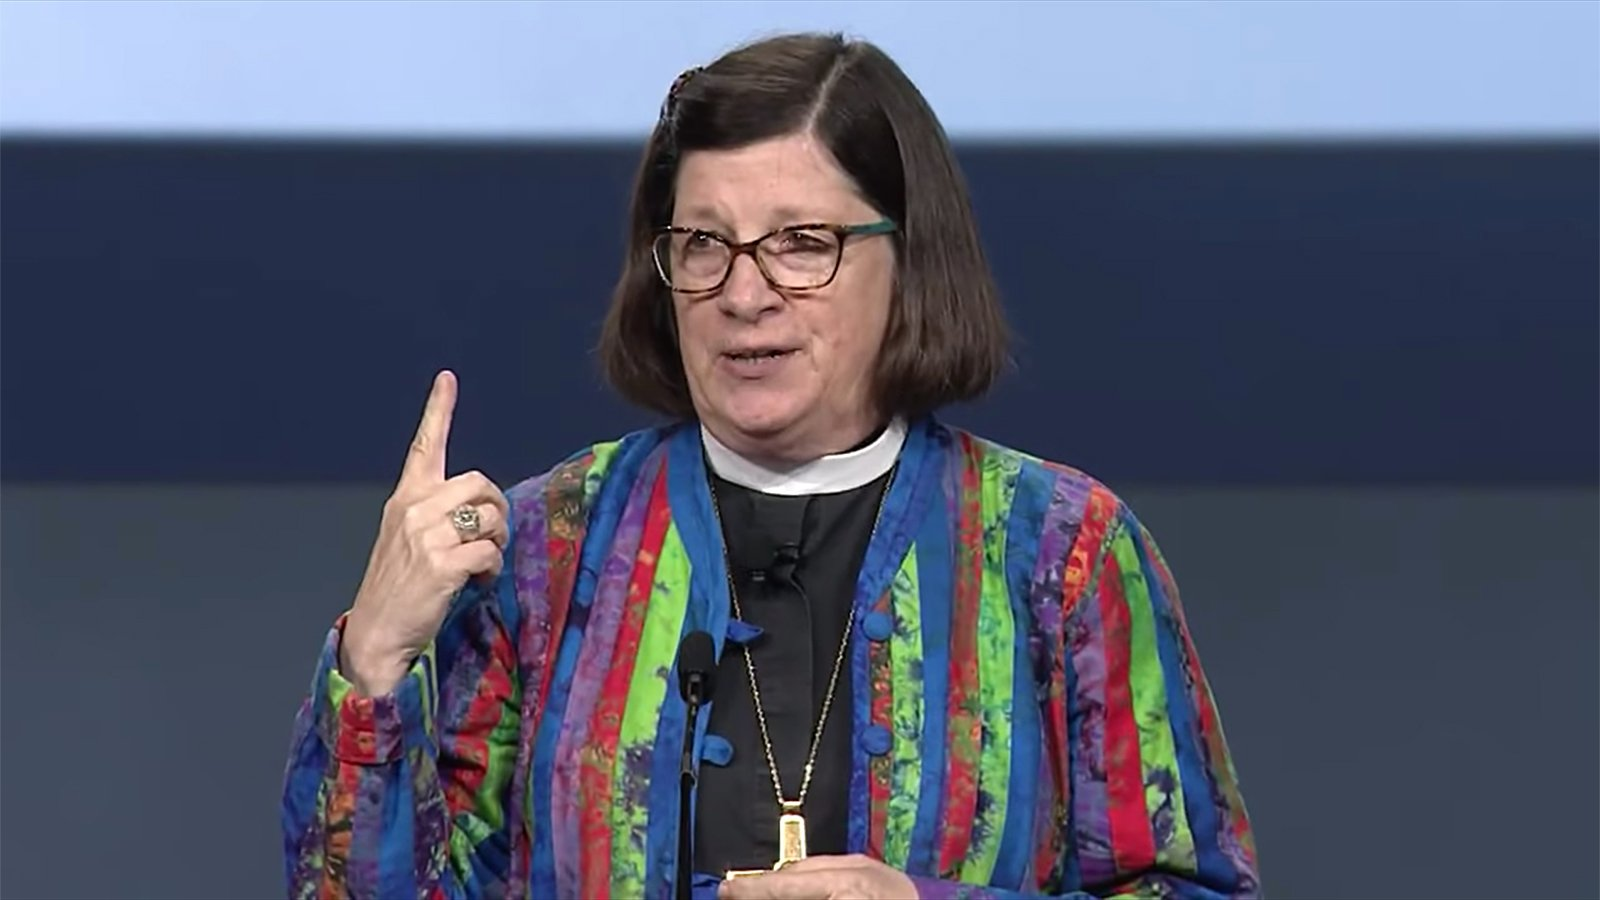 Presiding Bishop Elizabeth Eaton explains procedures for the ELCA Churchwide Assembly on Monday, Aug. 5, 2019, in Milwaukee. Video screenshot